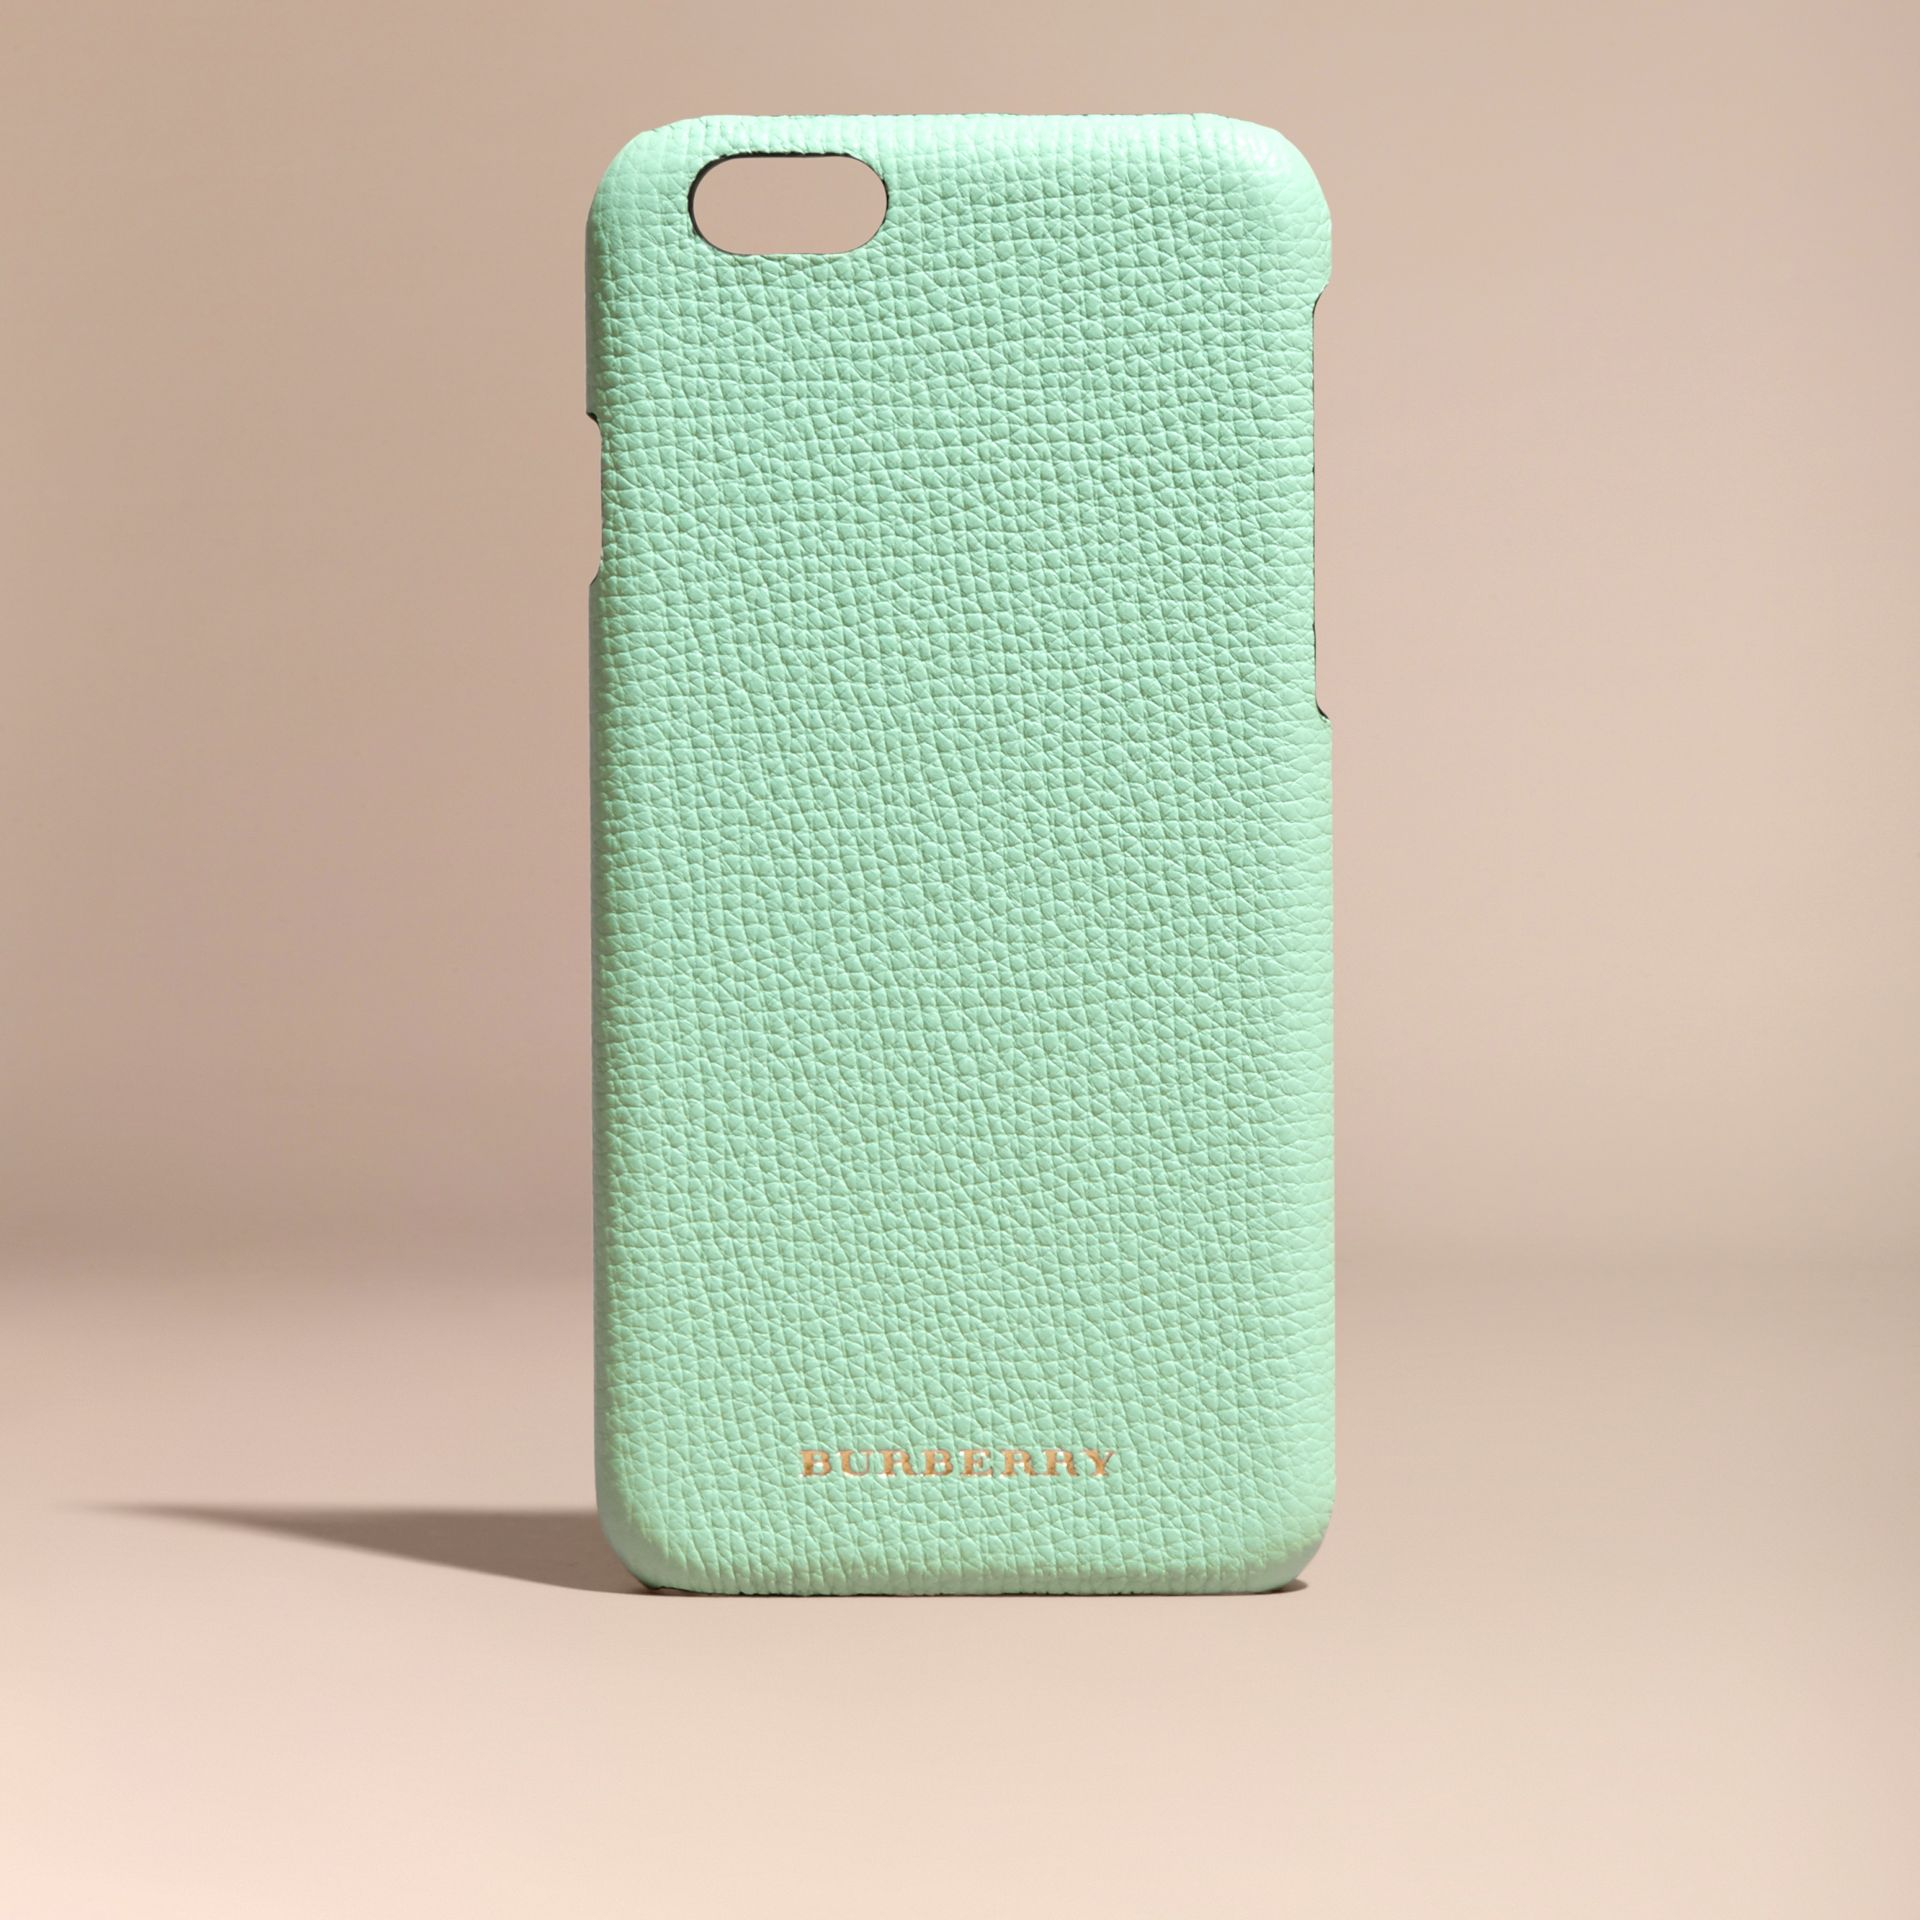 Grainy Leather iPhone 6 Case in Light Mint | Burberry - gallery image 5